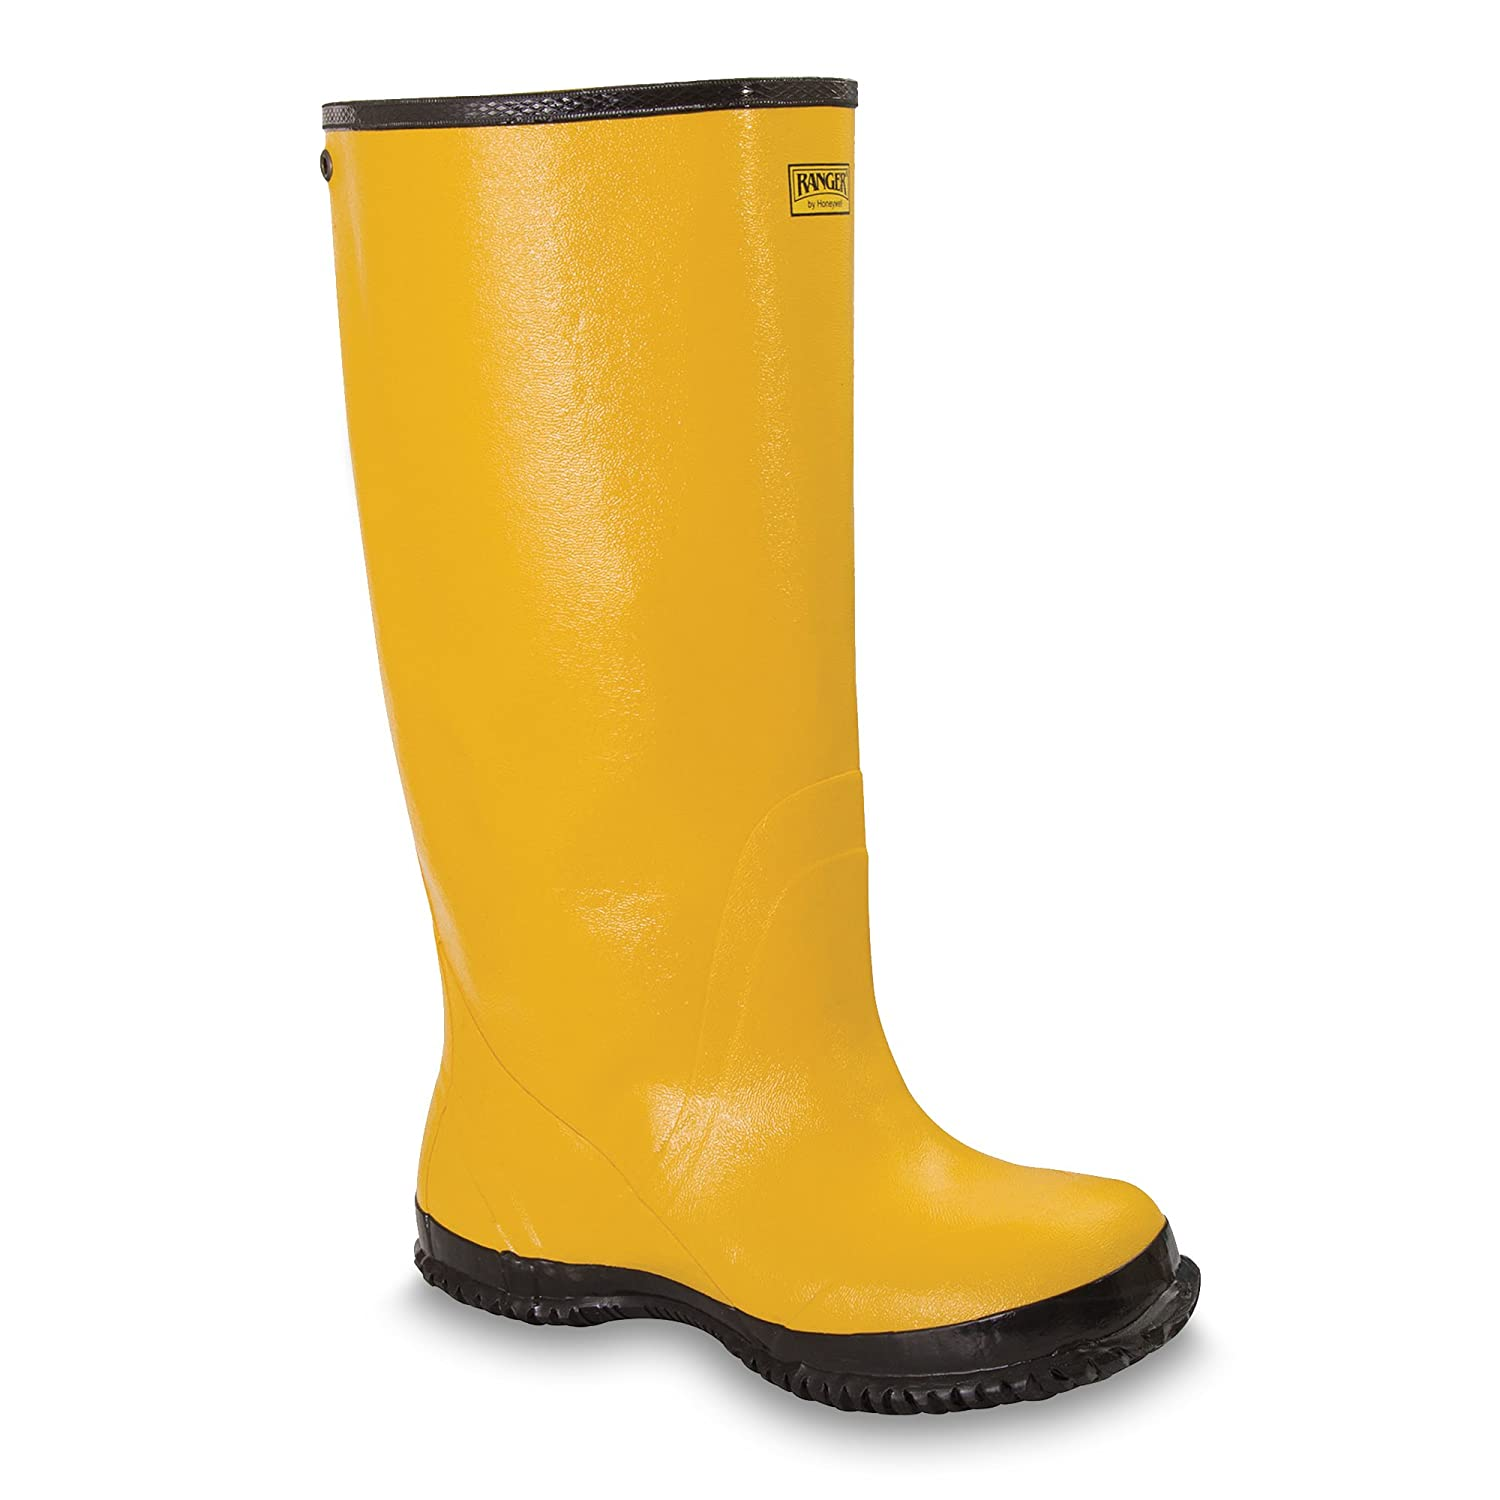 Ranger 18 Oversized Men's Rubber Overboots, Yellow (A380) Sperian Protection Group A380-YLM-080